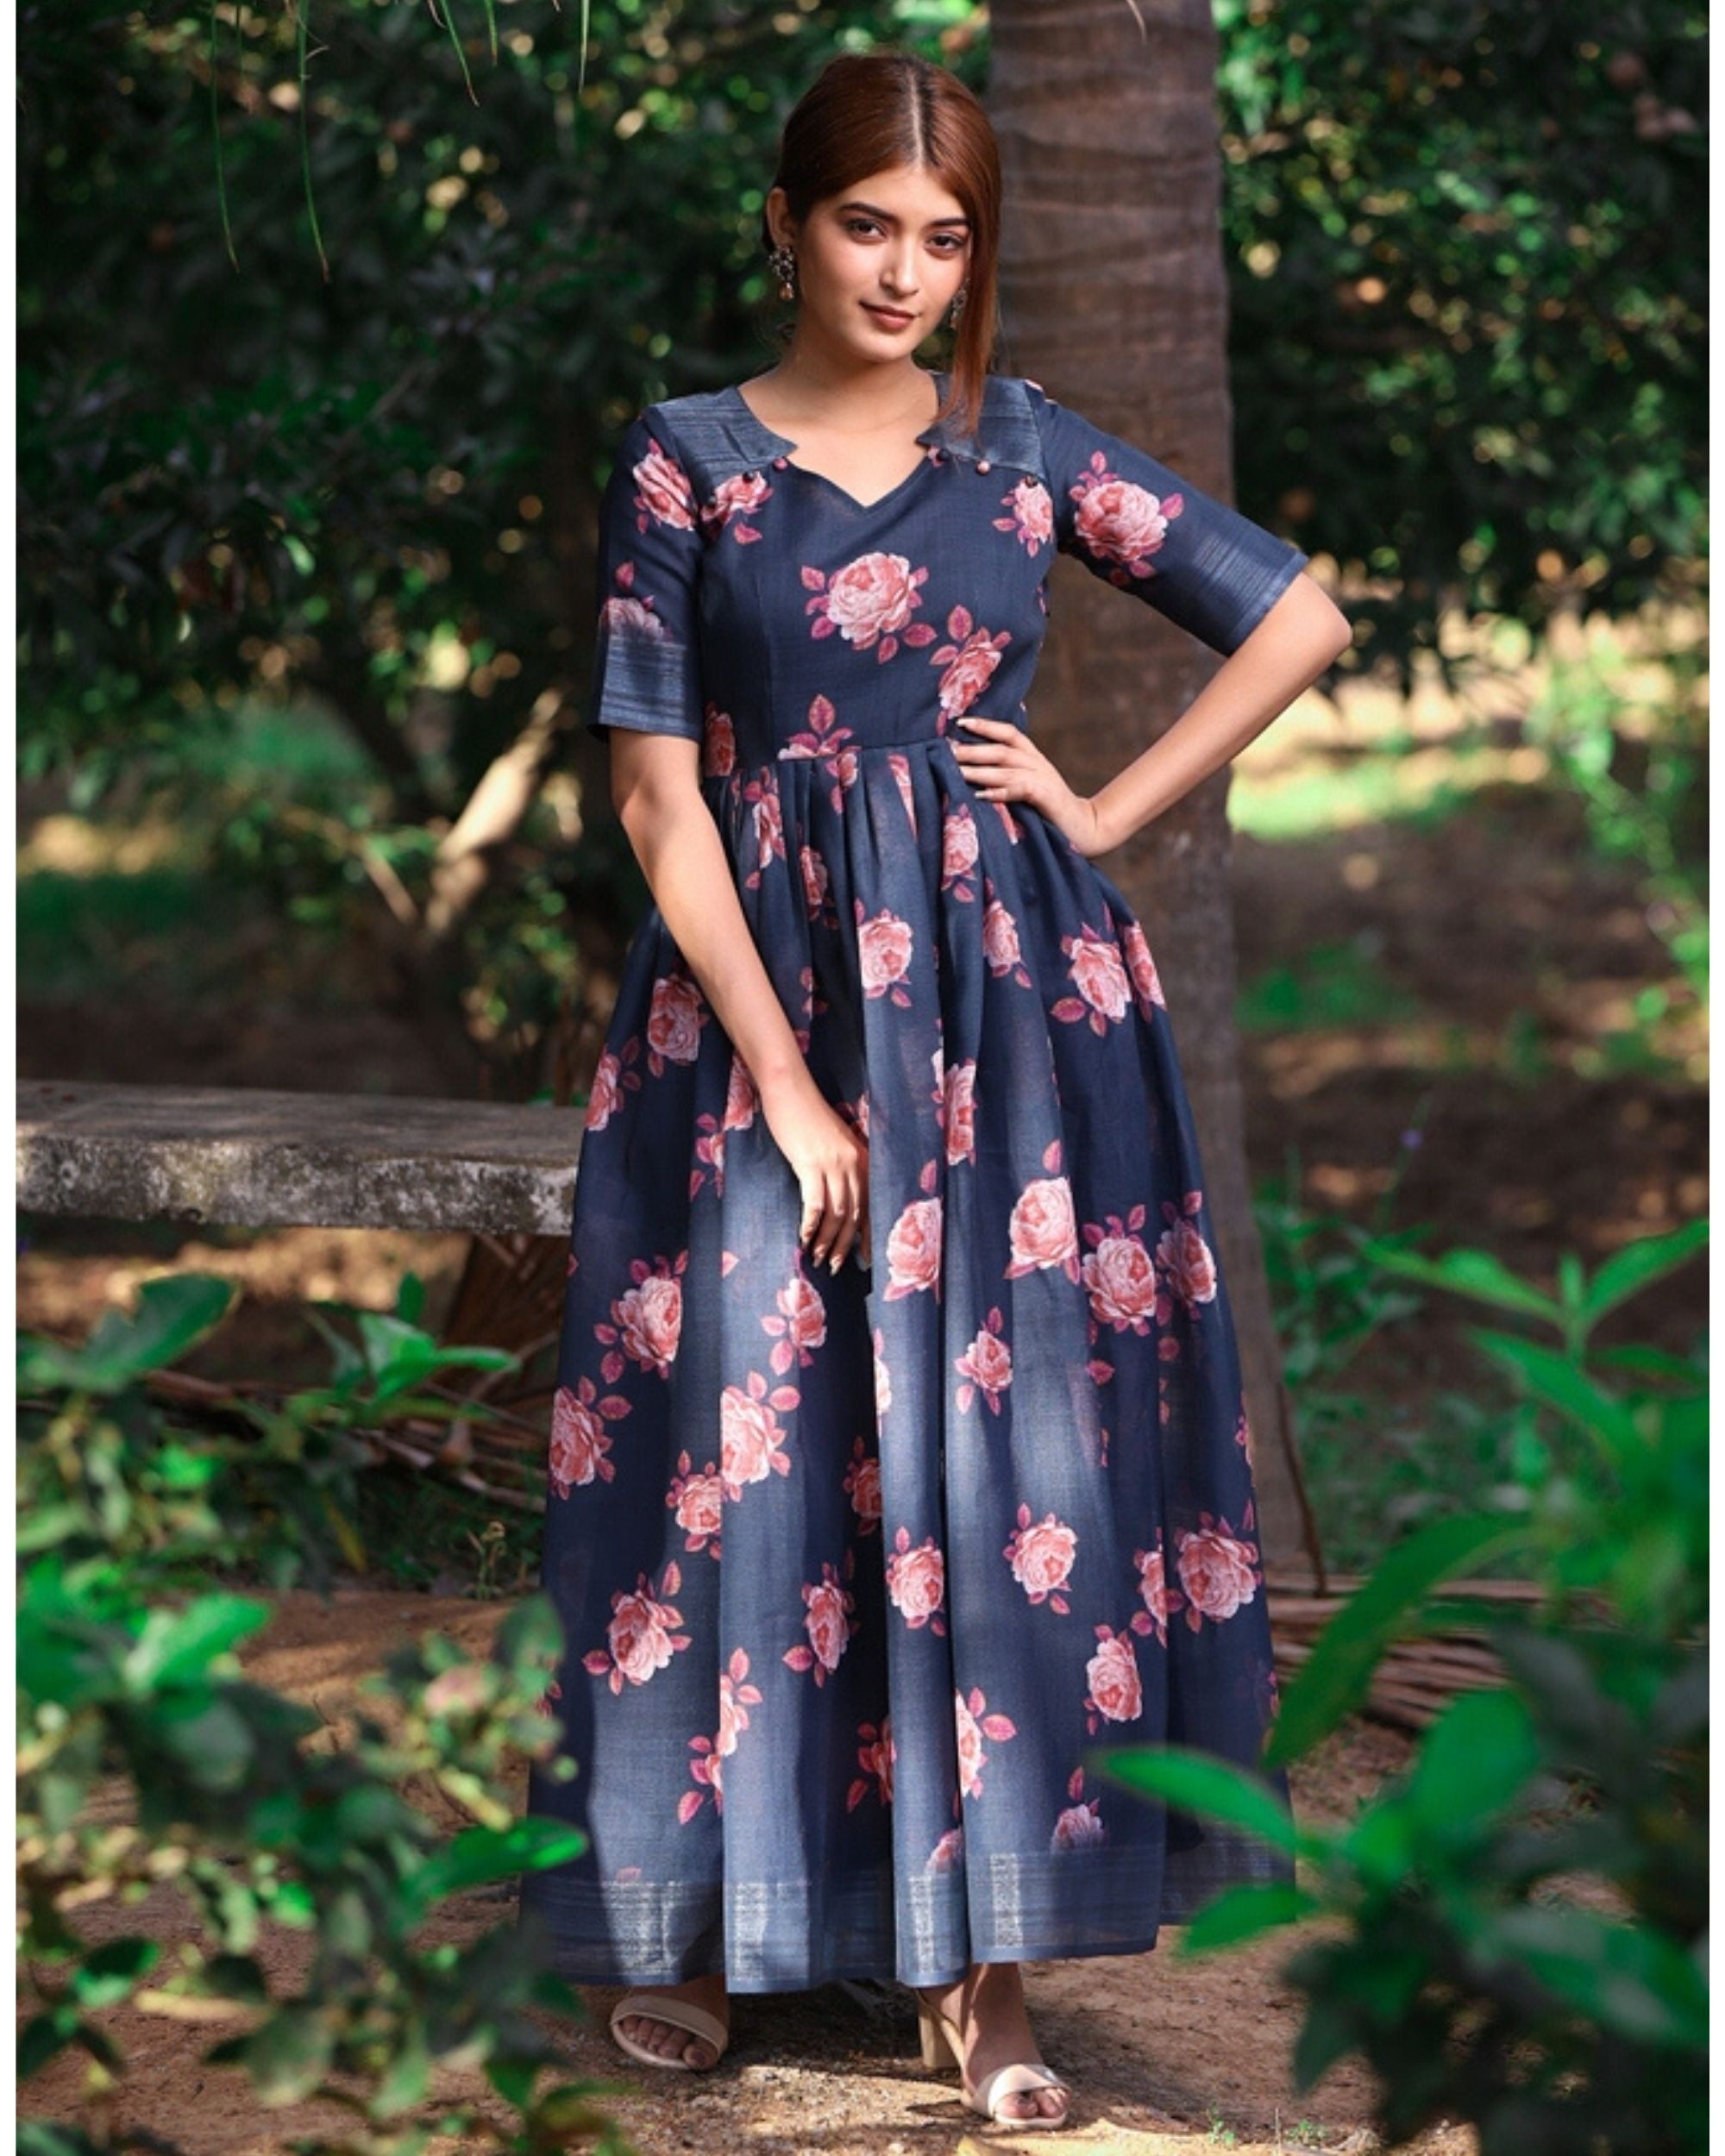 Dark blue and pink floral flared maxi dress